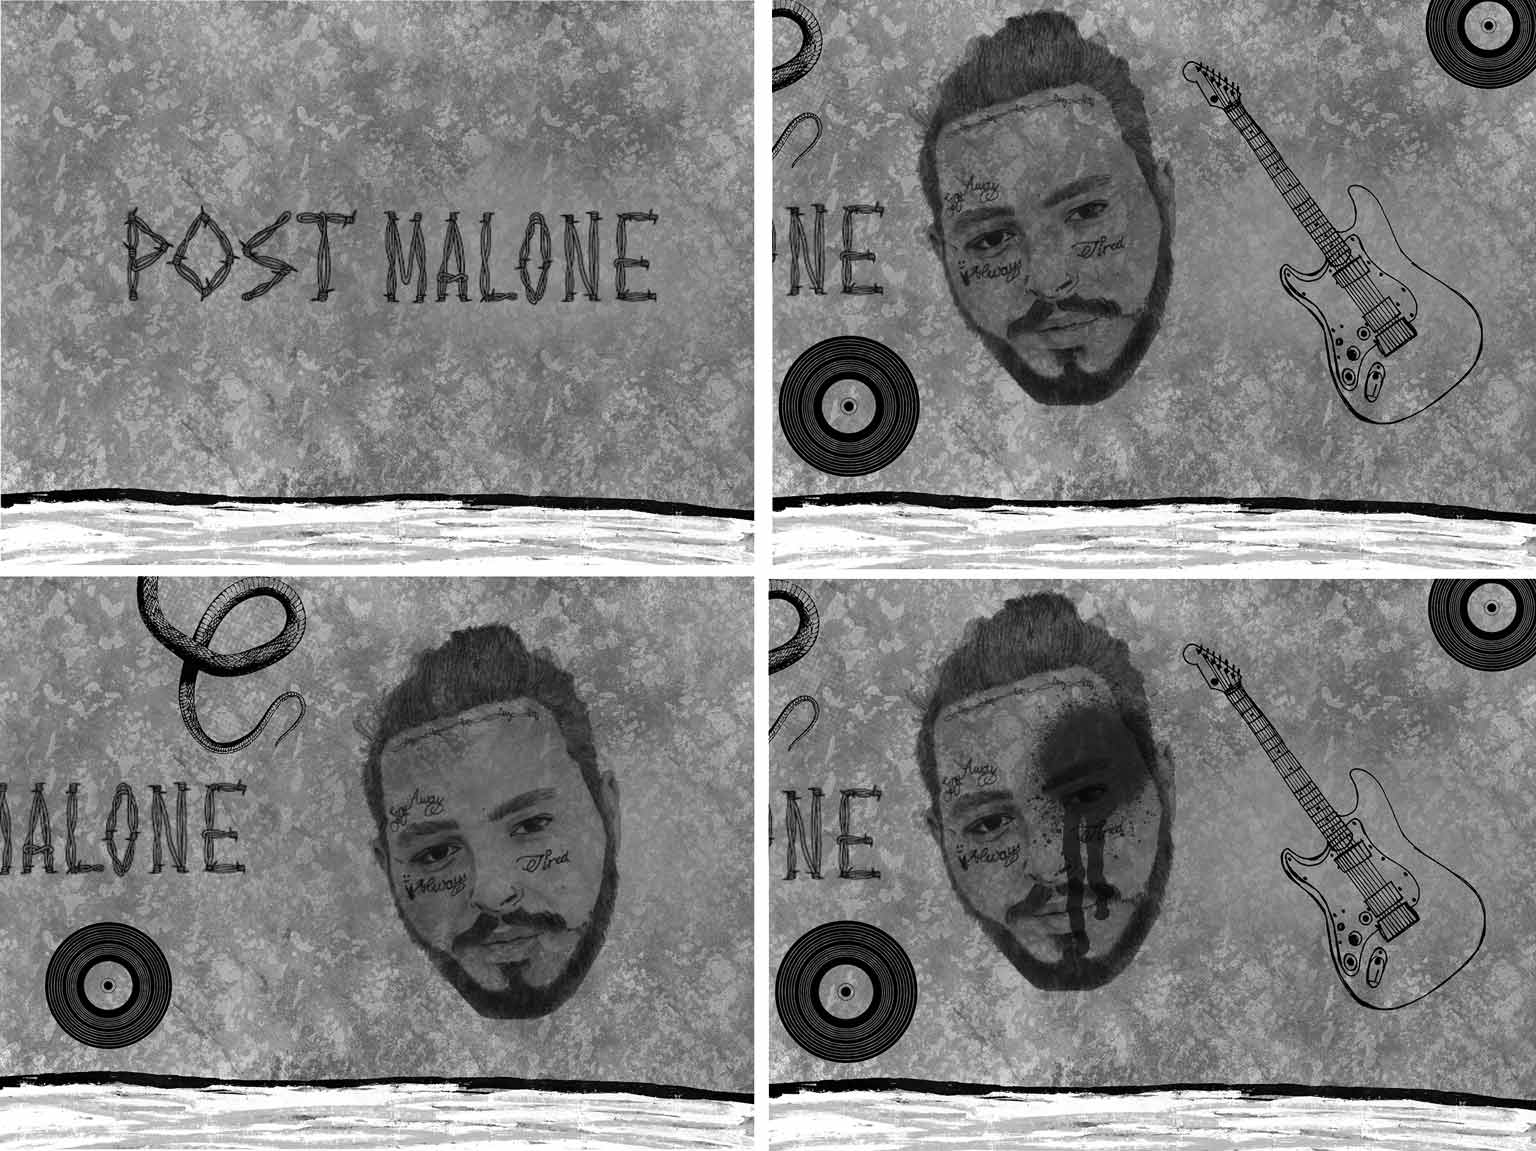 4 sketches of post Malones face